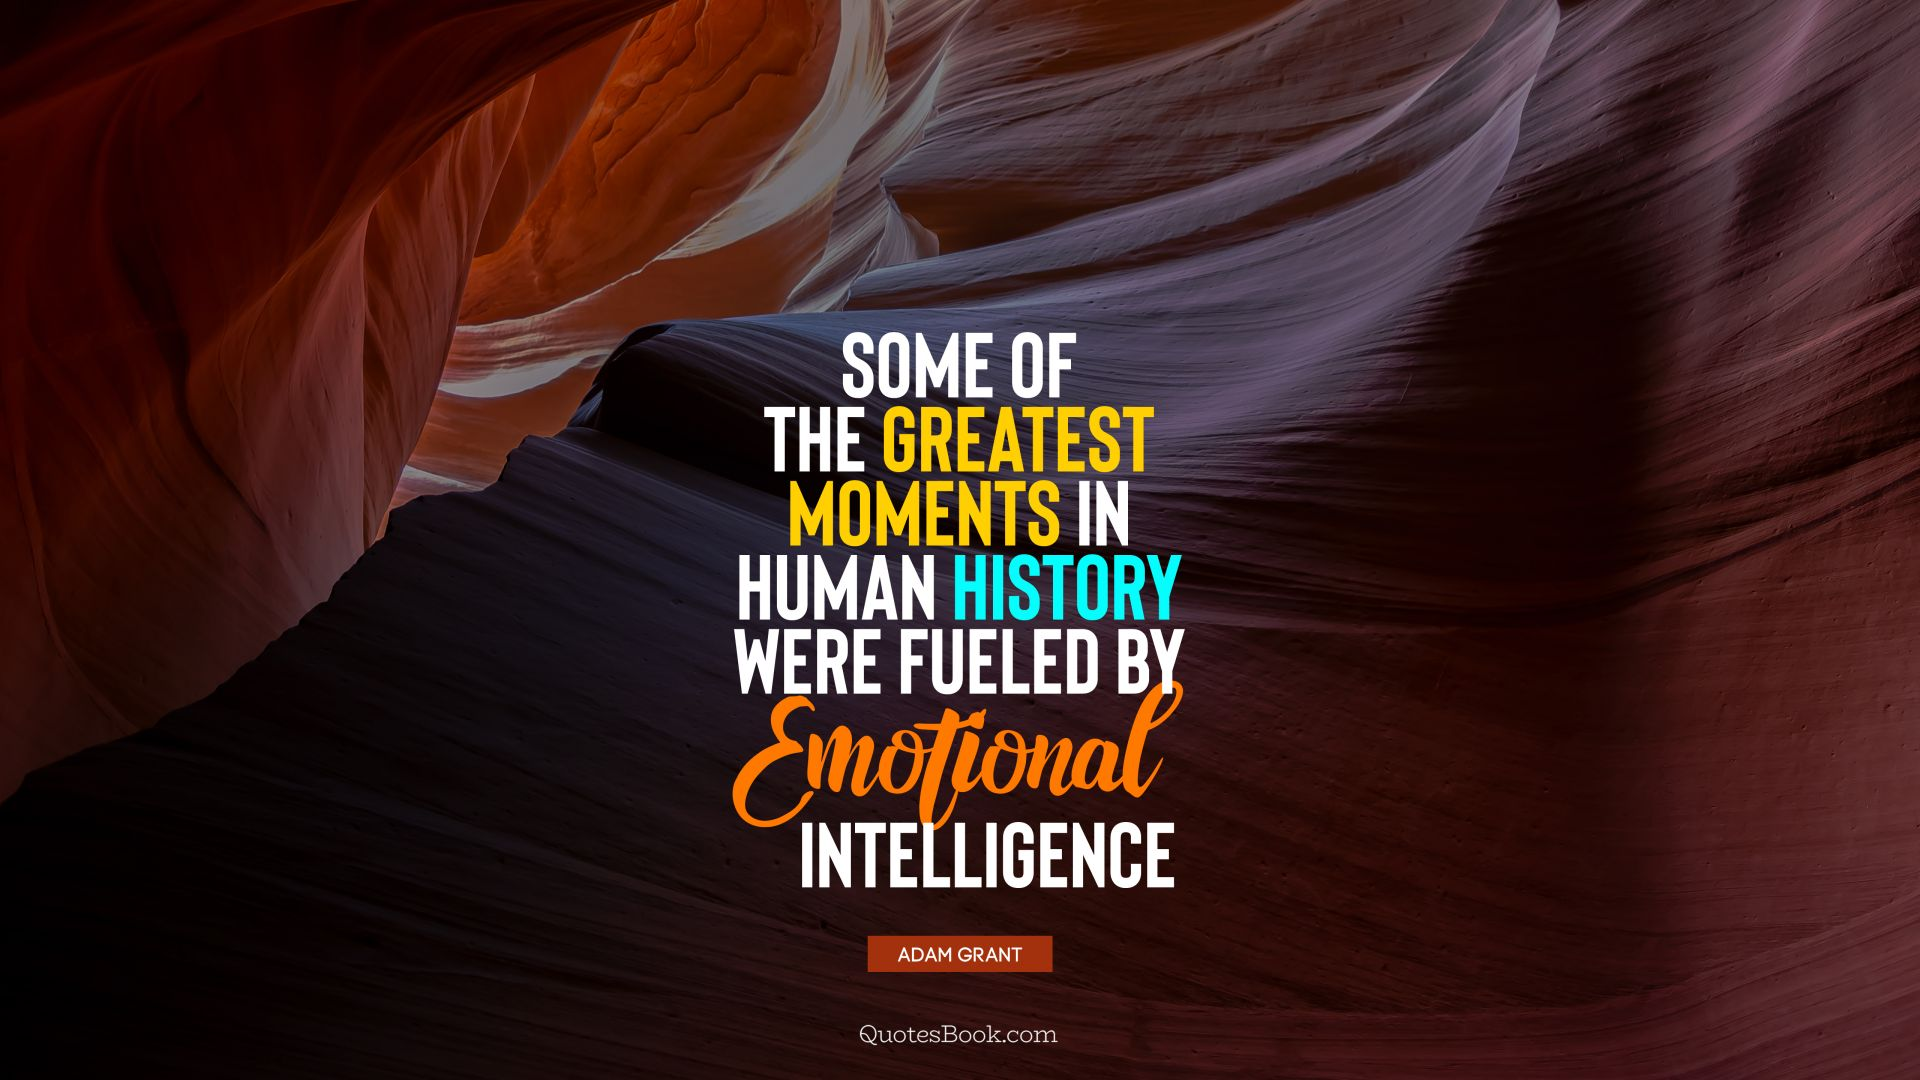 Some of the greatest moments in human history were fueled by emotional intelligence. - Quote by Adam Grant